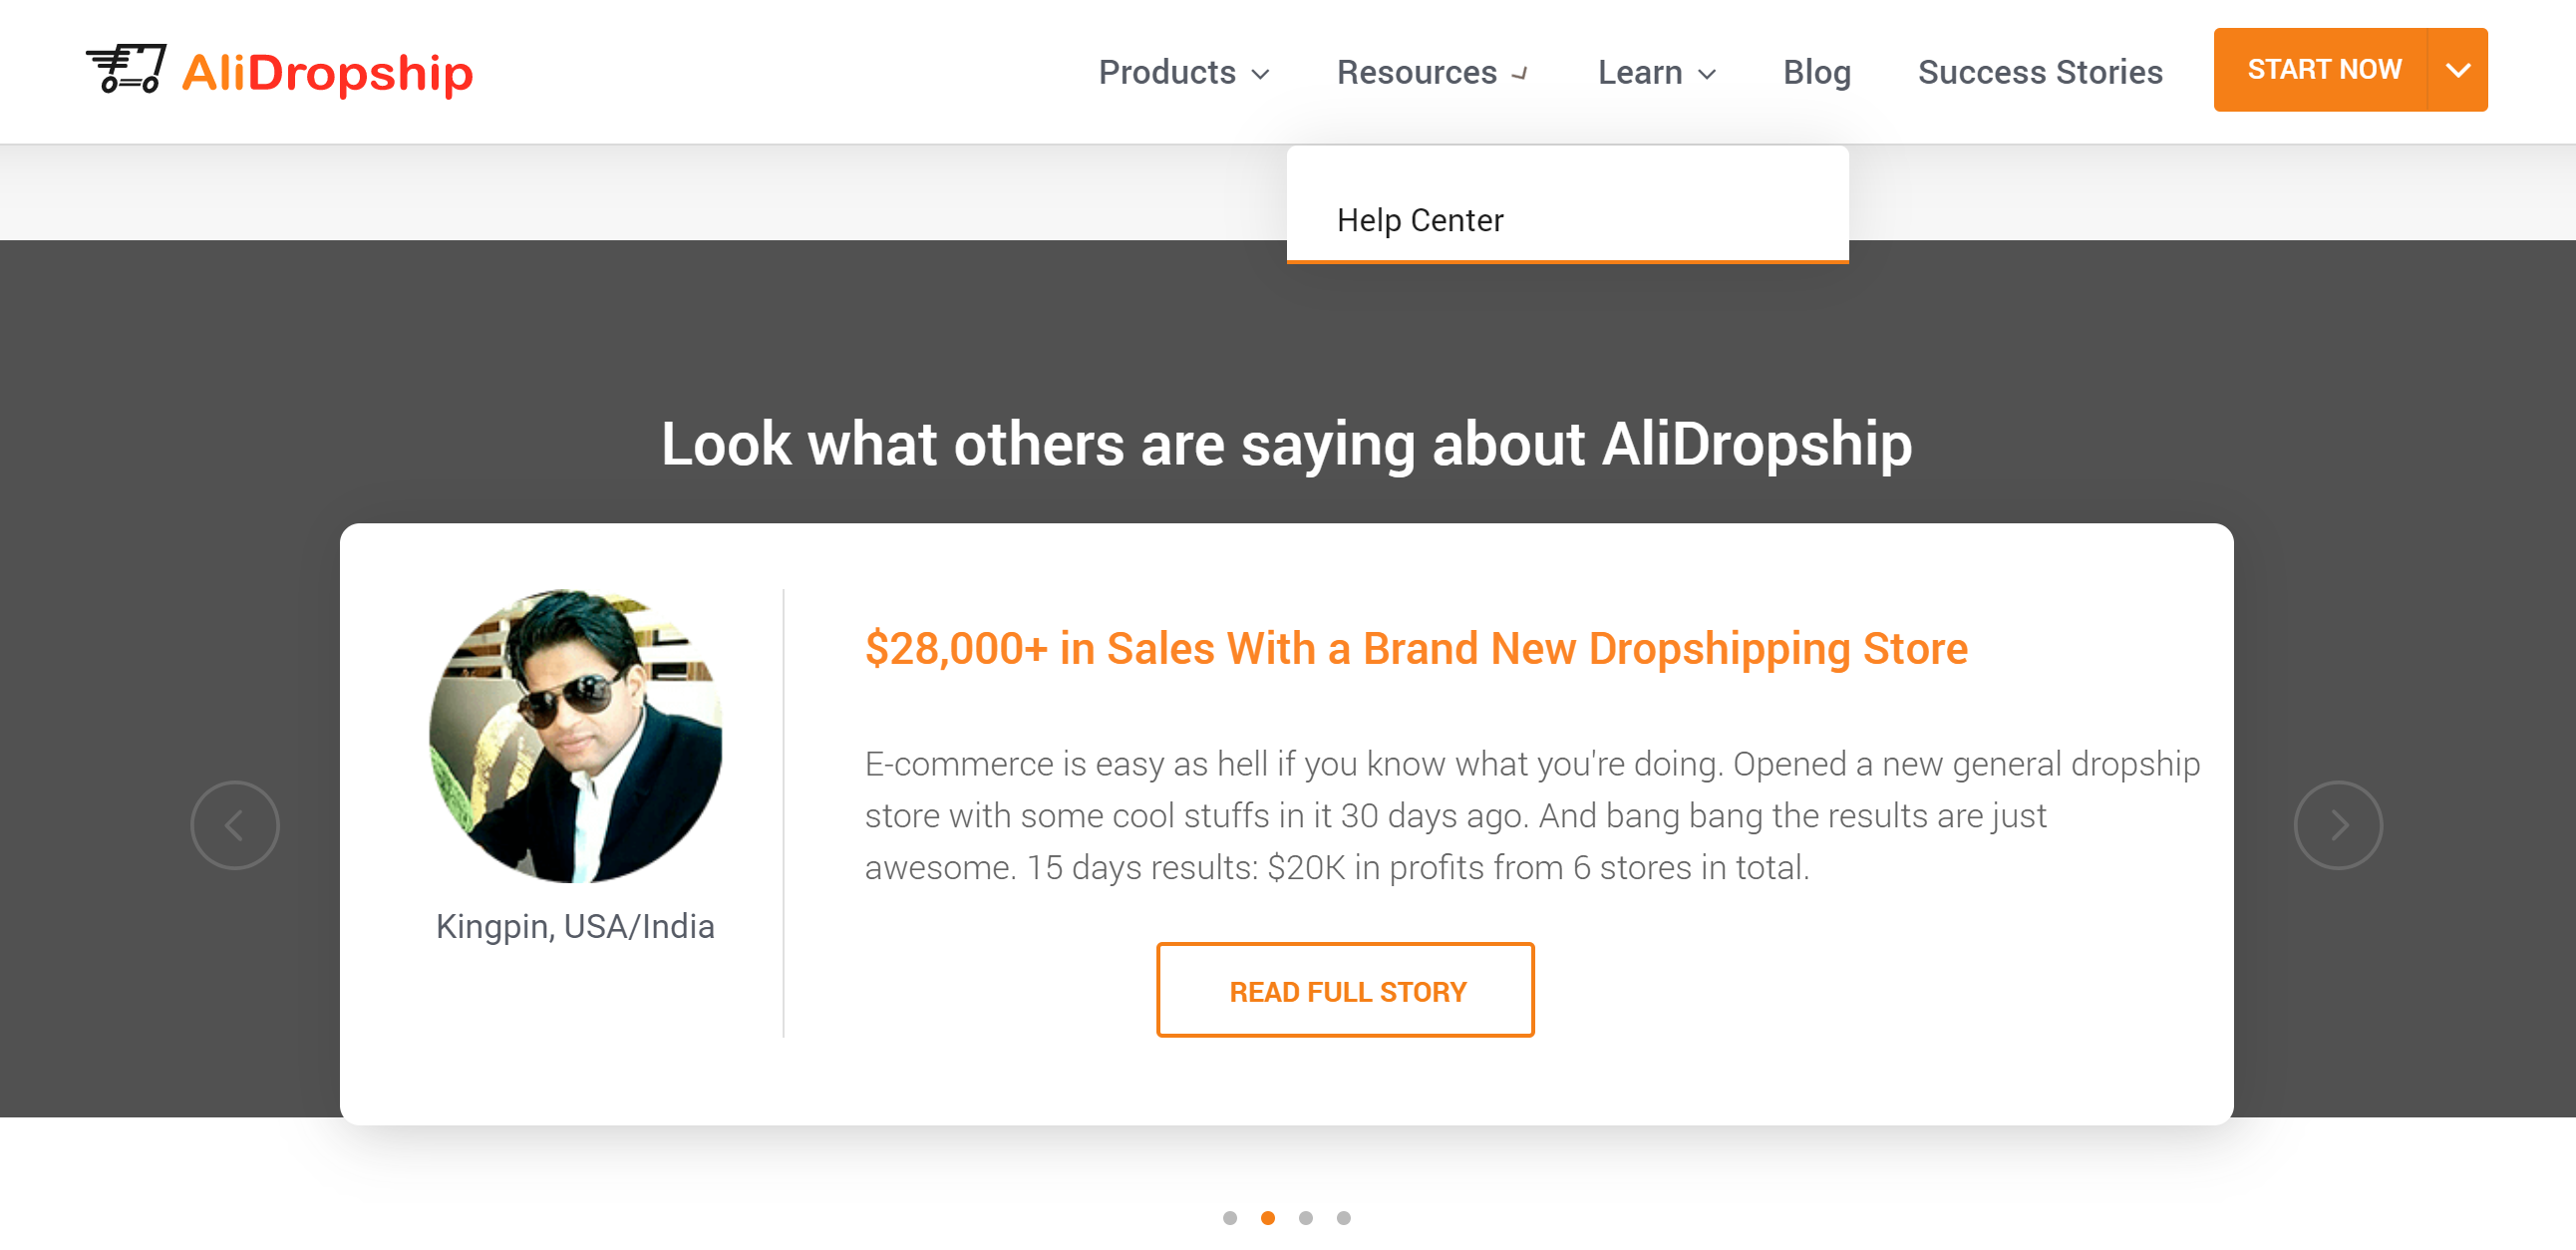 Alidropship buy custom dropshipping store servicesz